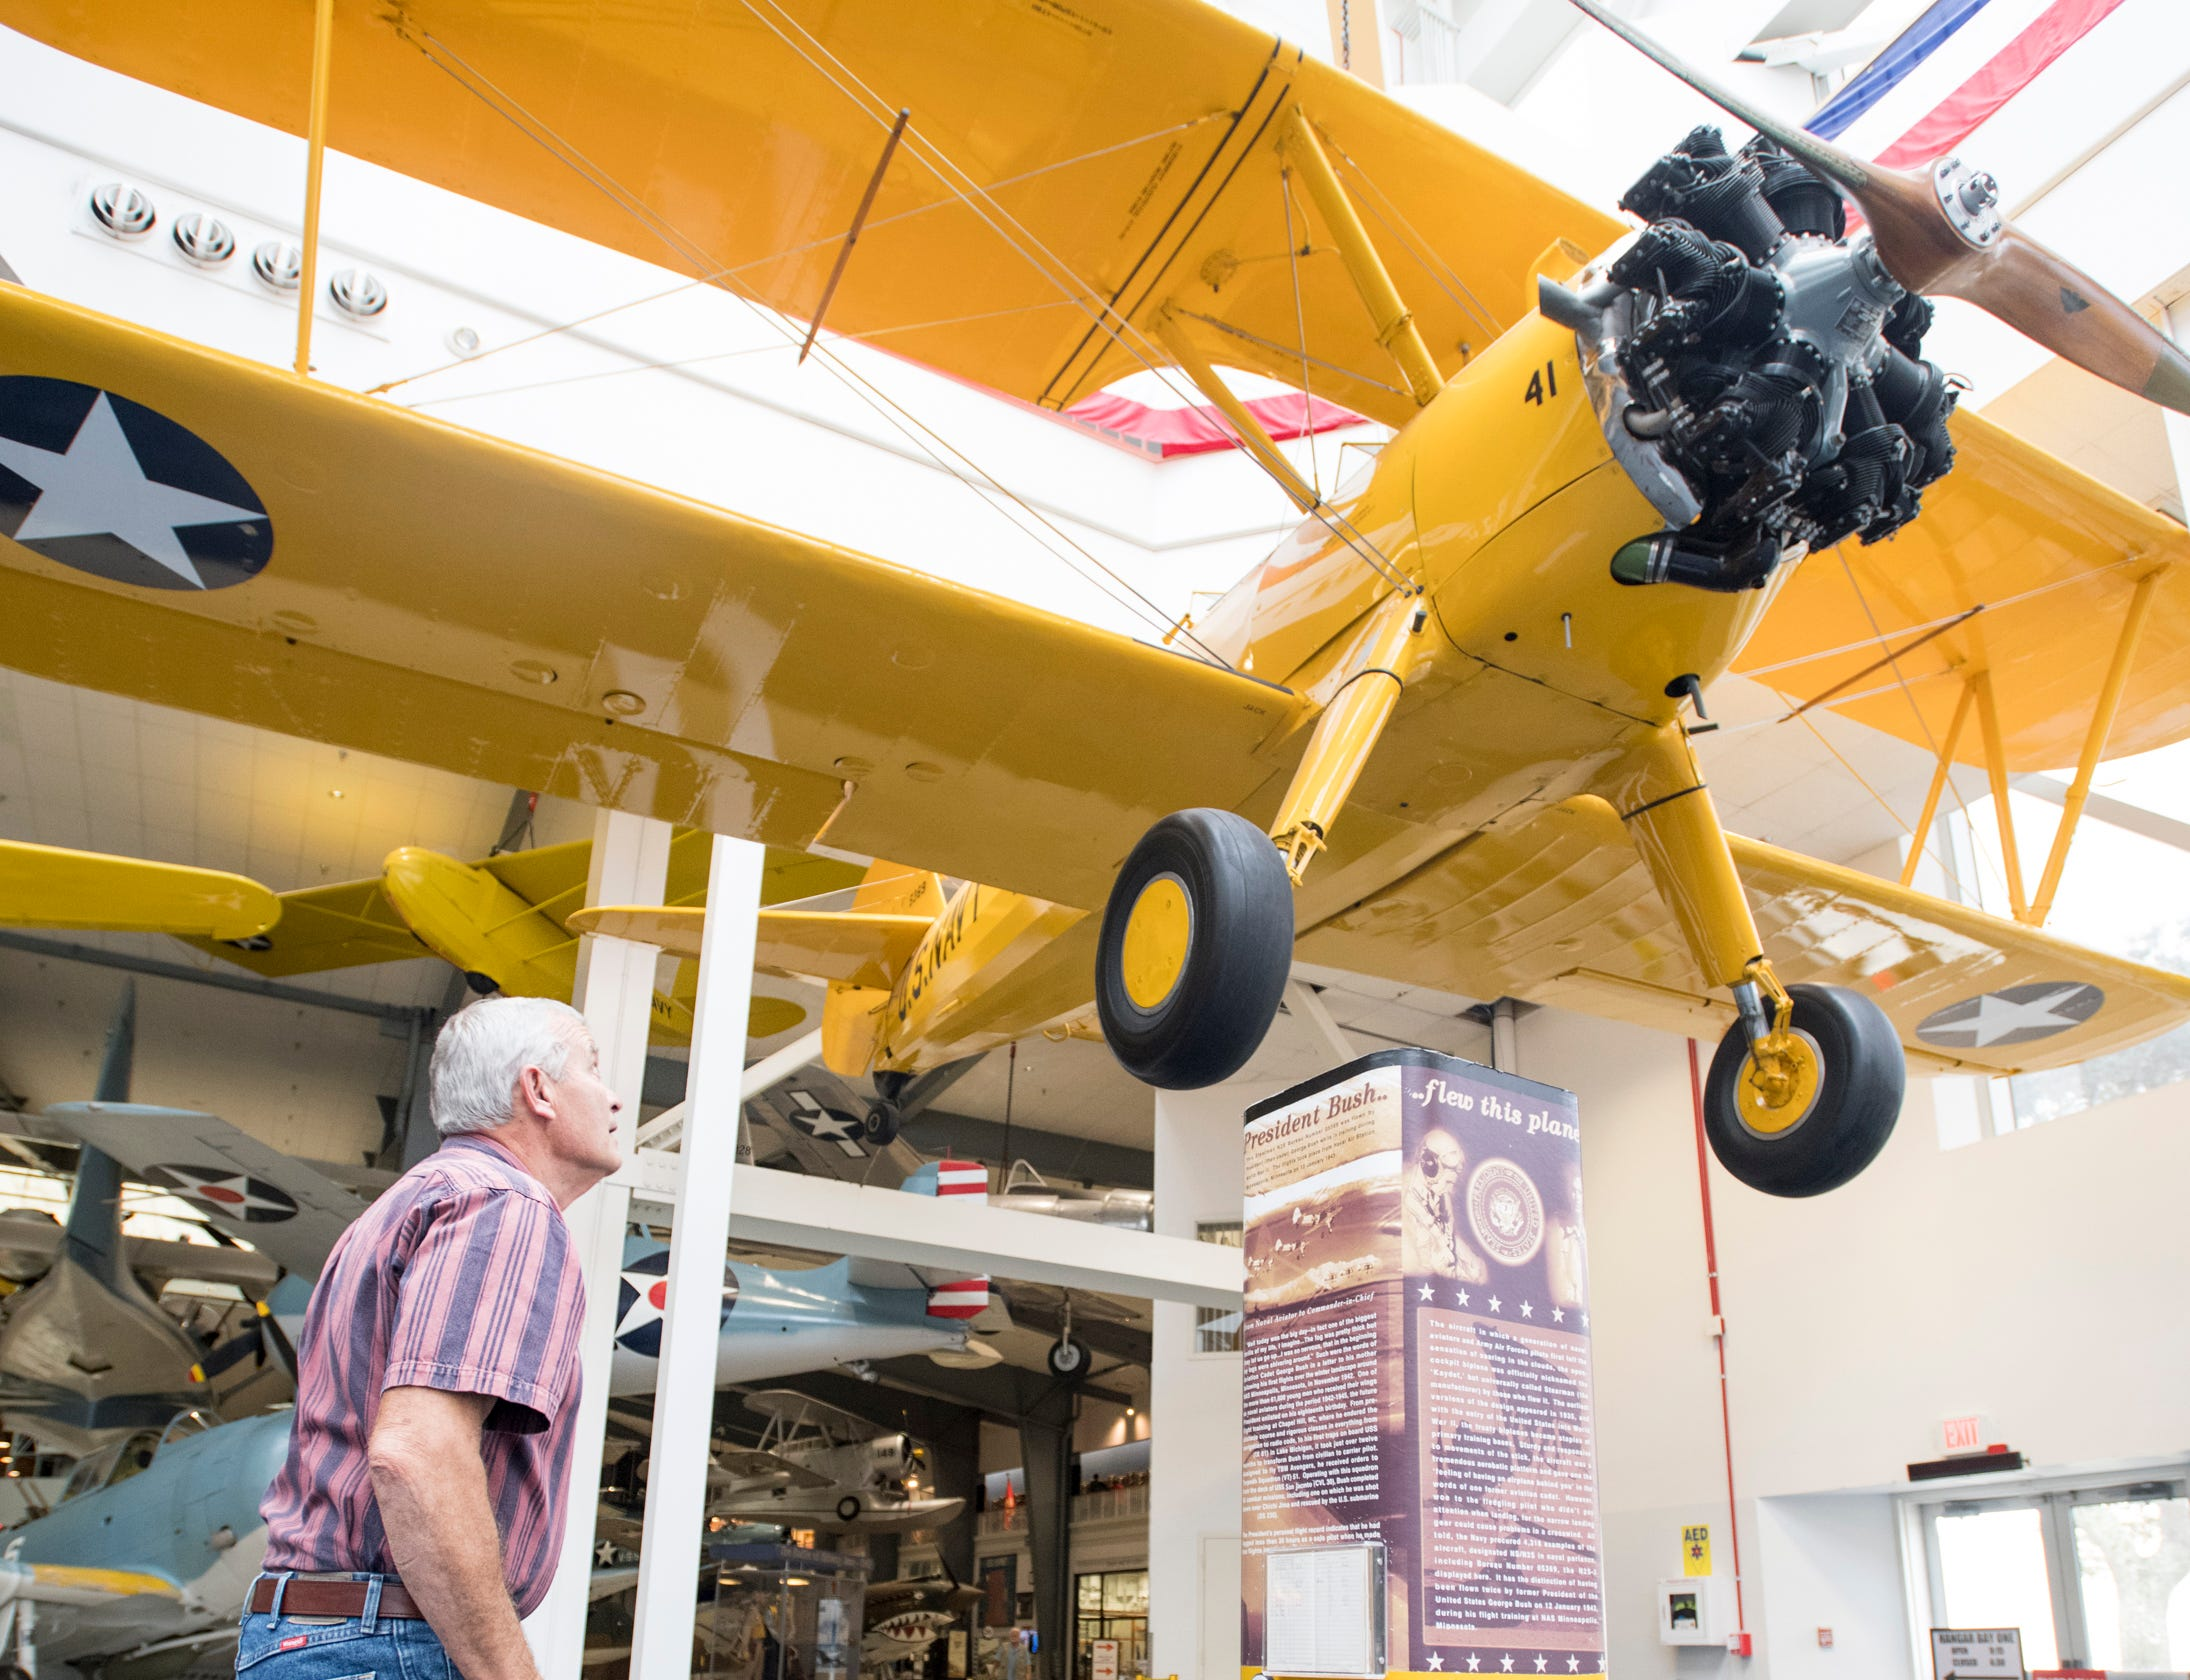 Joe Bright, of Knoxville, Tennessee, looks up at the Stearman biplane flown by President (then cadet) George H.W. Bush while training during World War II on display at the National Naval Aviation Museum in Pensacola on Monday, December 3, 2018.